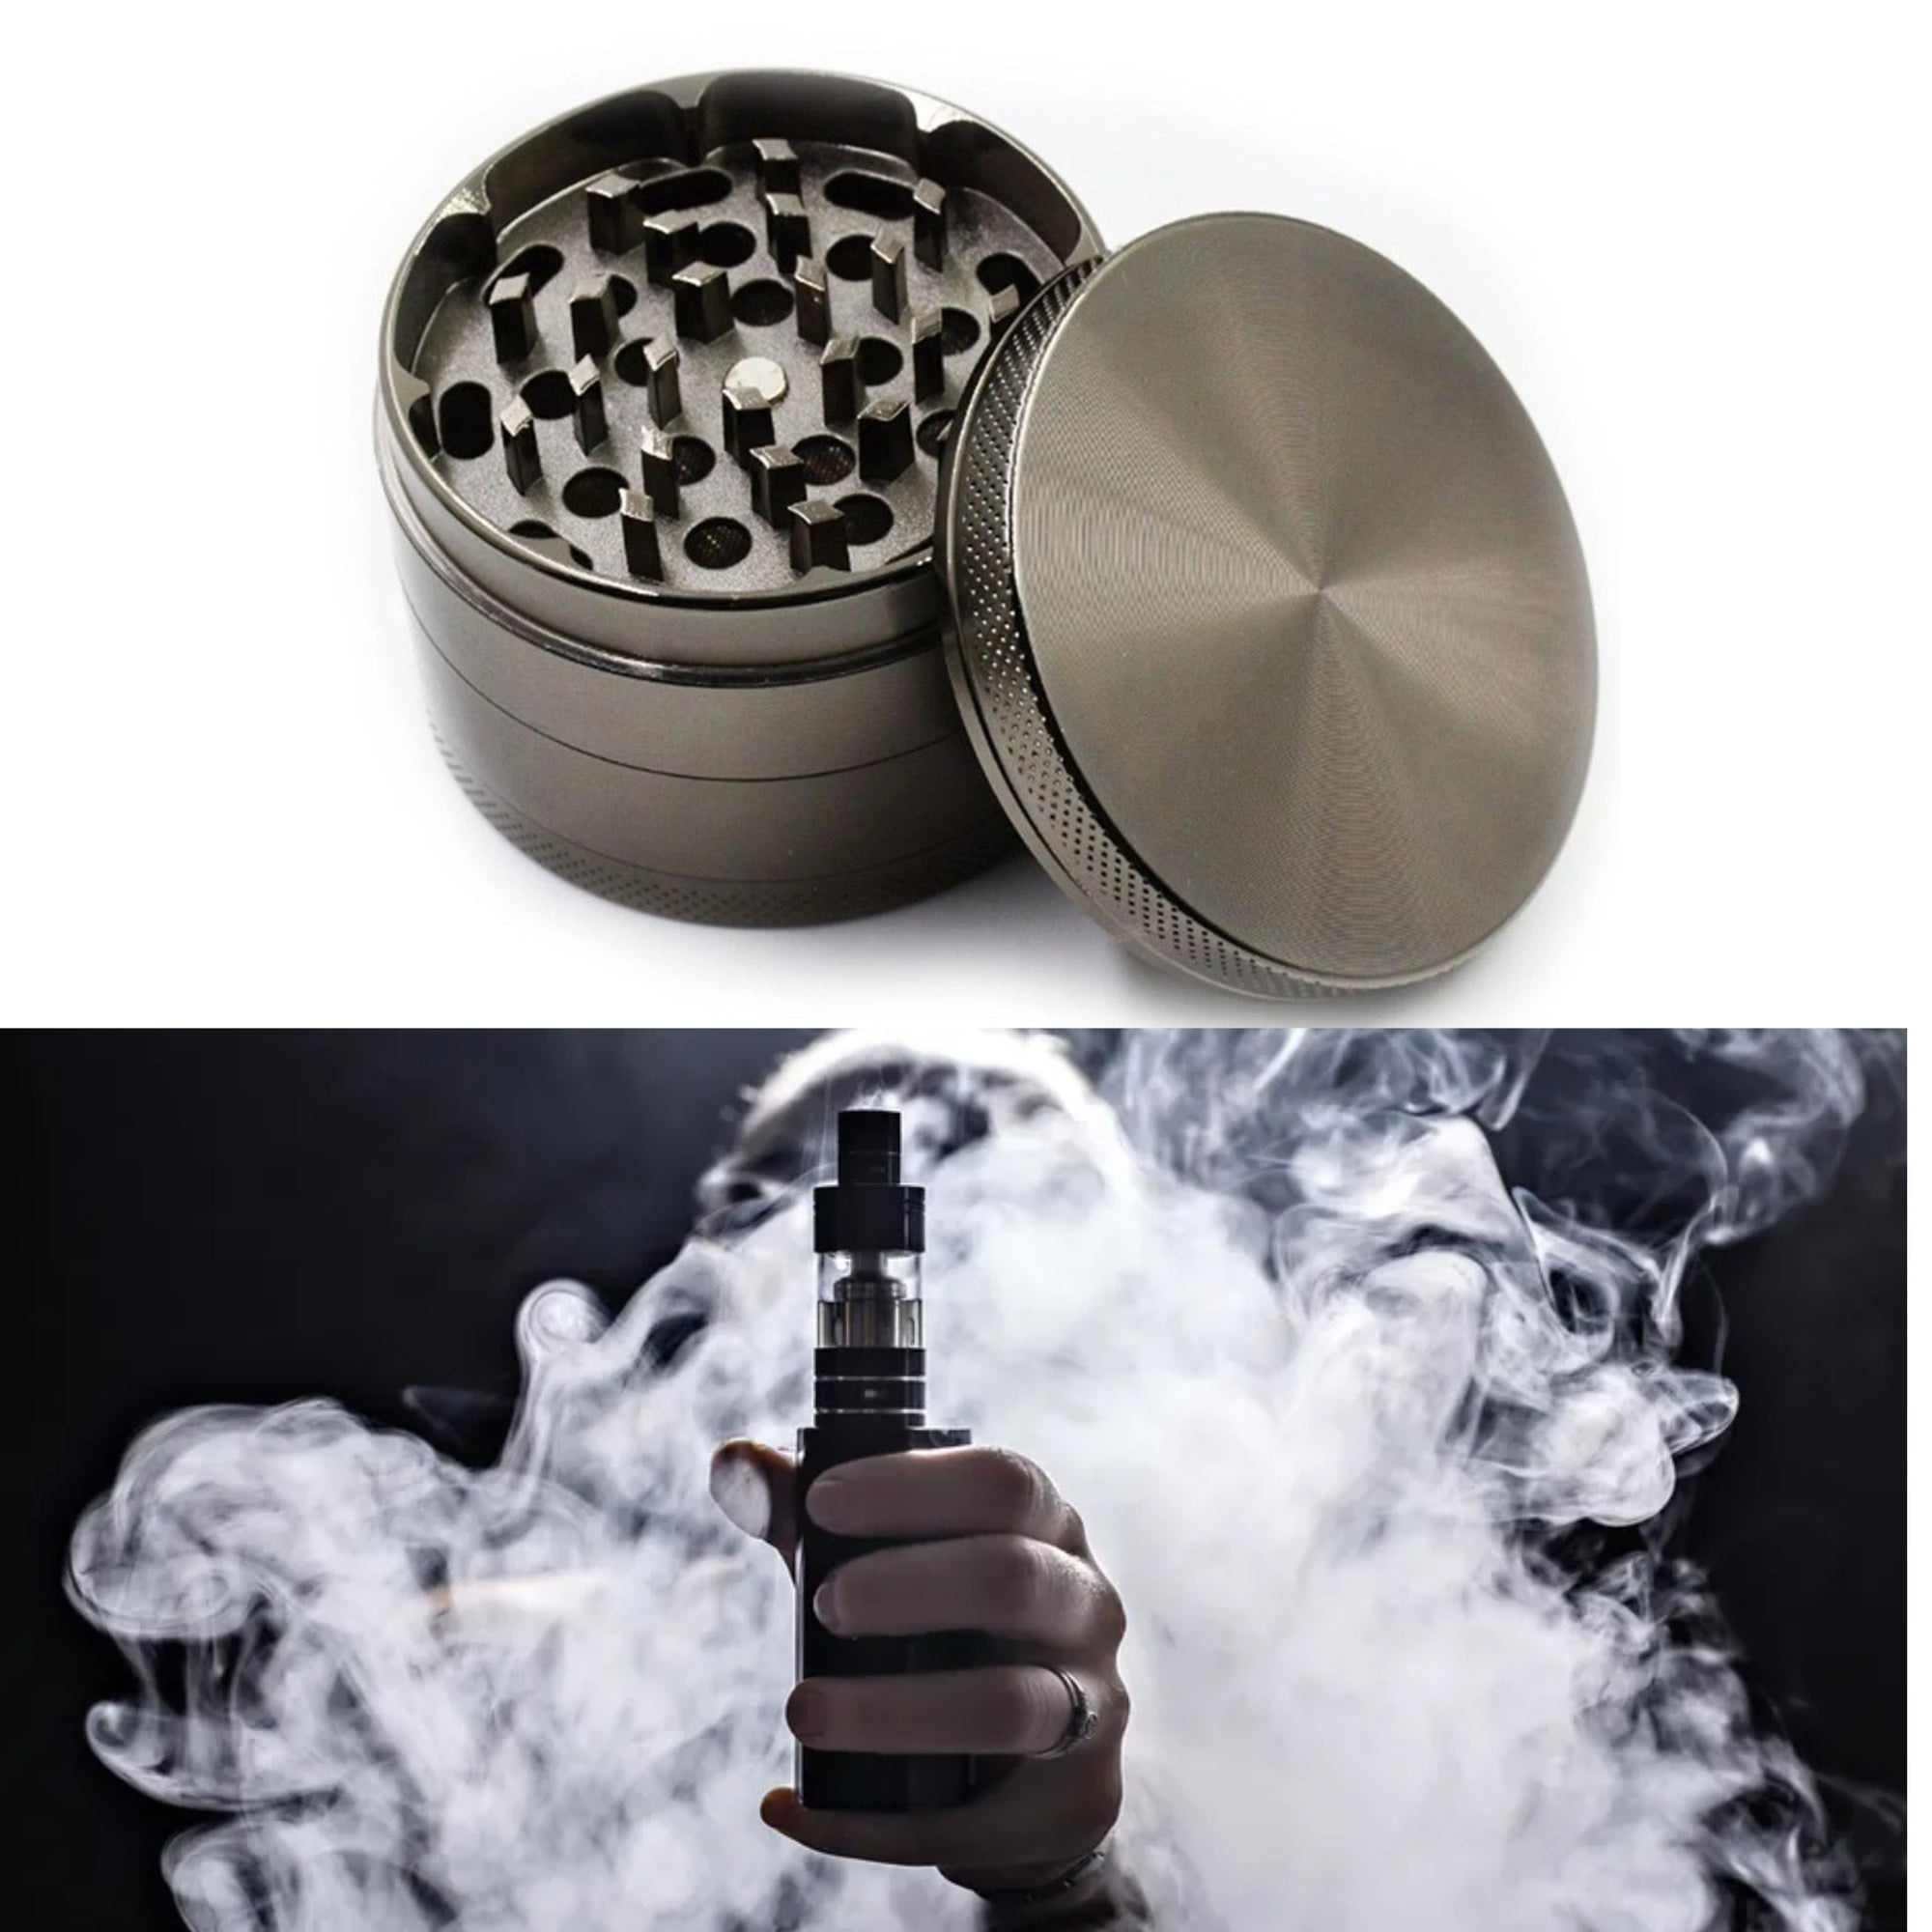 What is The Best Herb Grinder for Vaping?